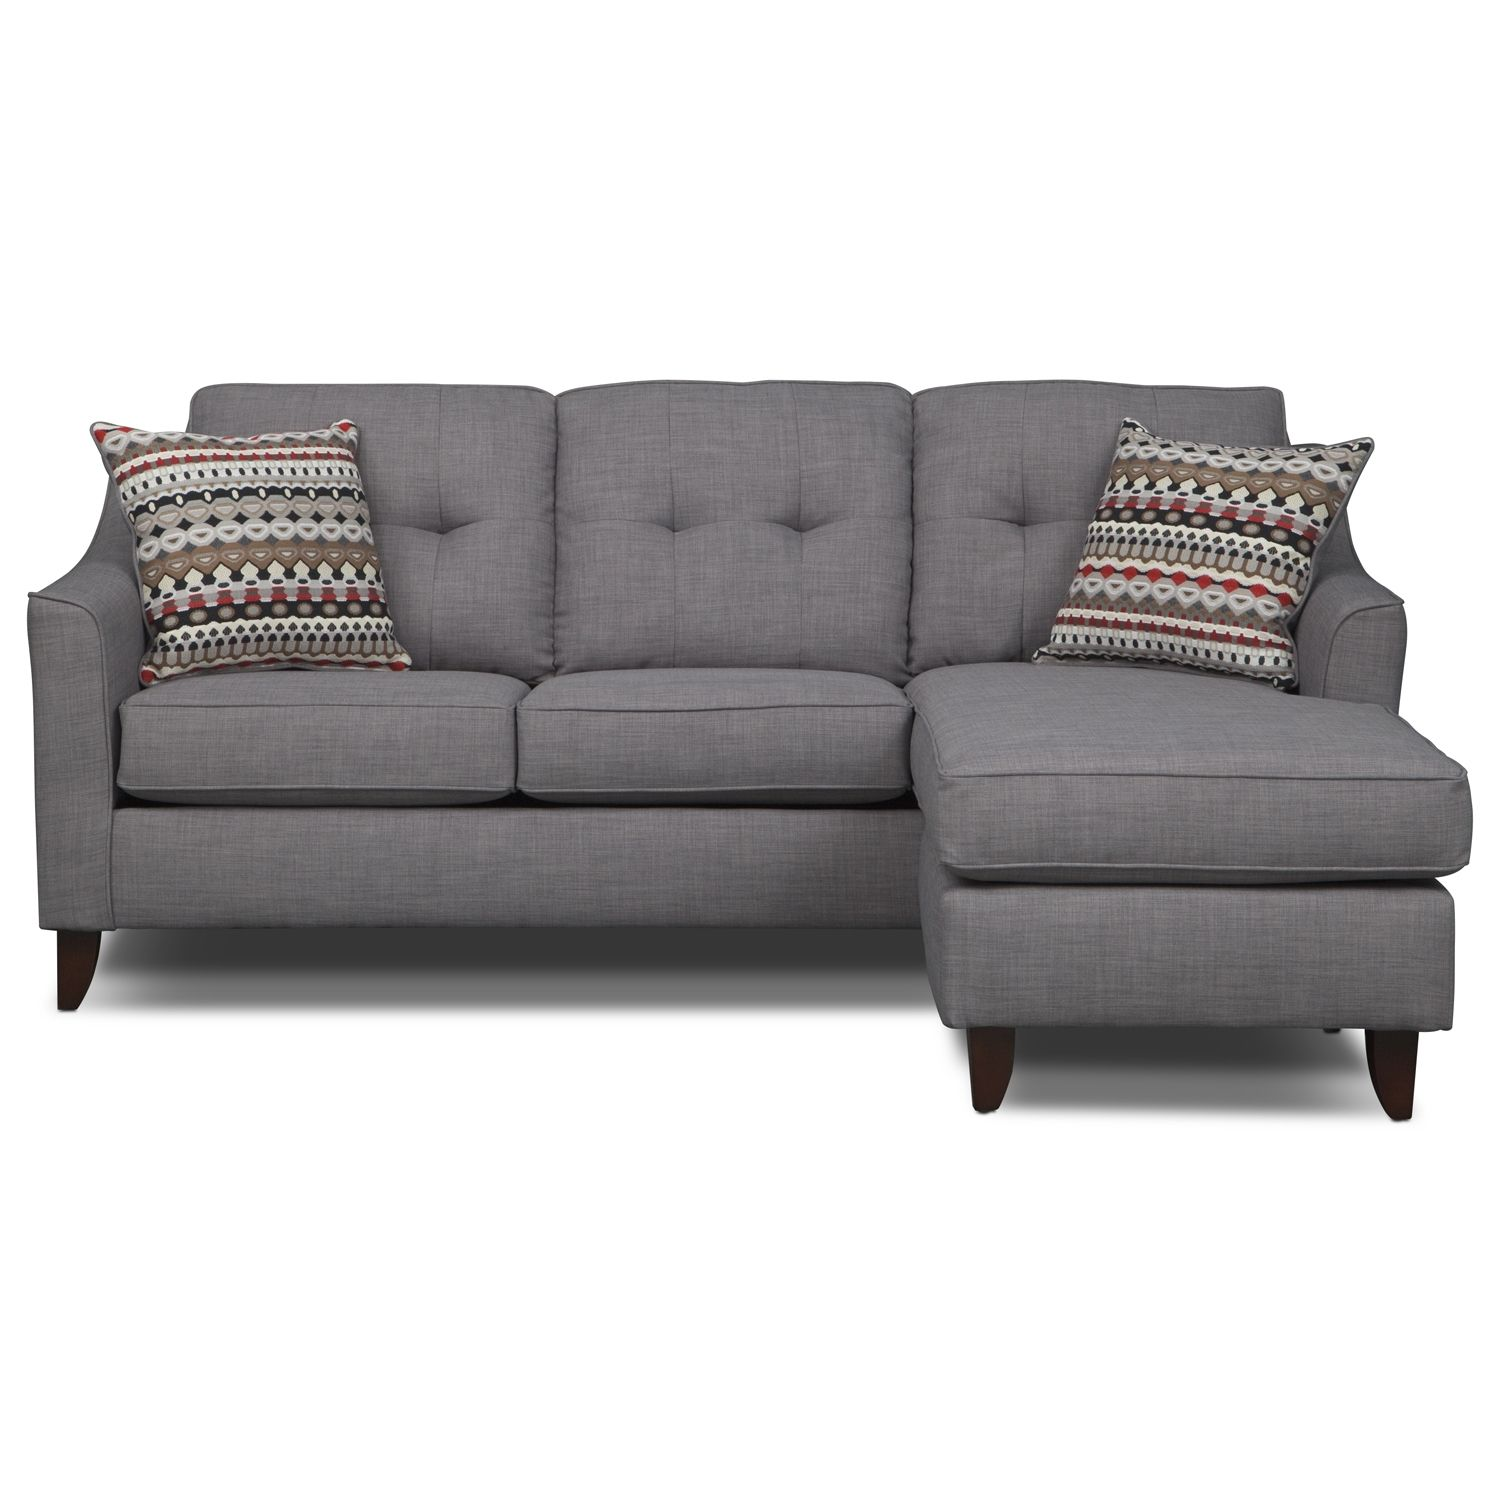 Marco Chaise Sofa Value City Furniture Houseware